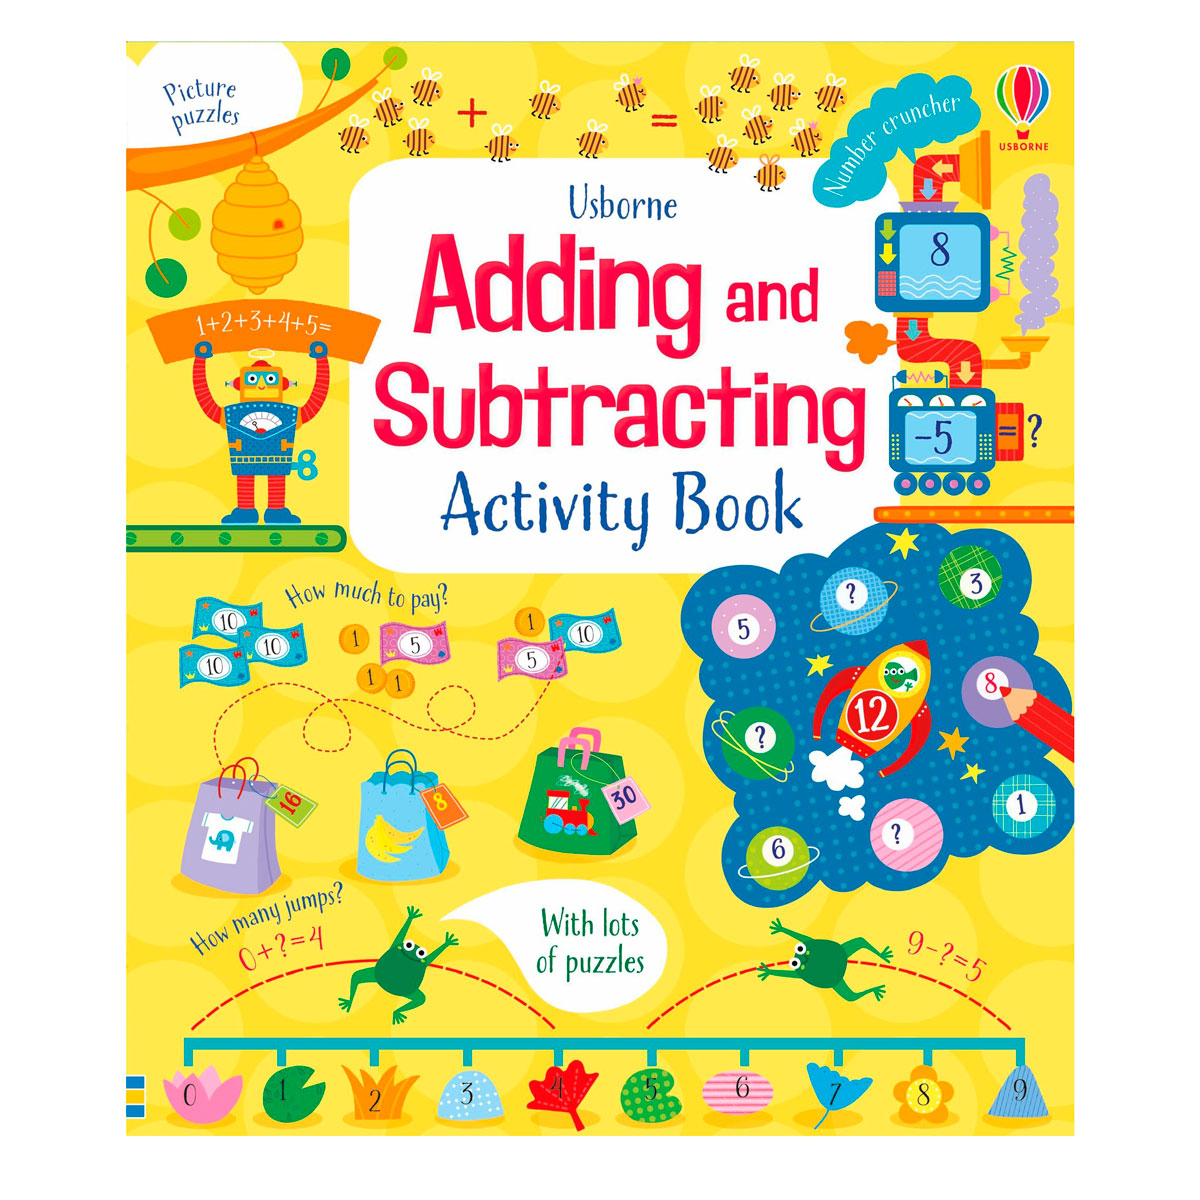 Usbourne Adding and Subtracting Activity Book